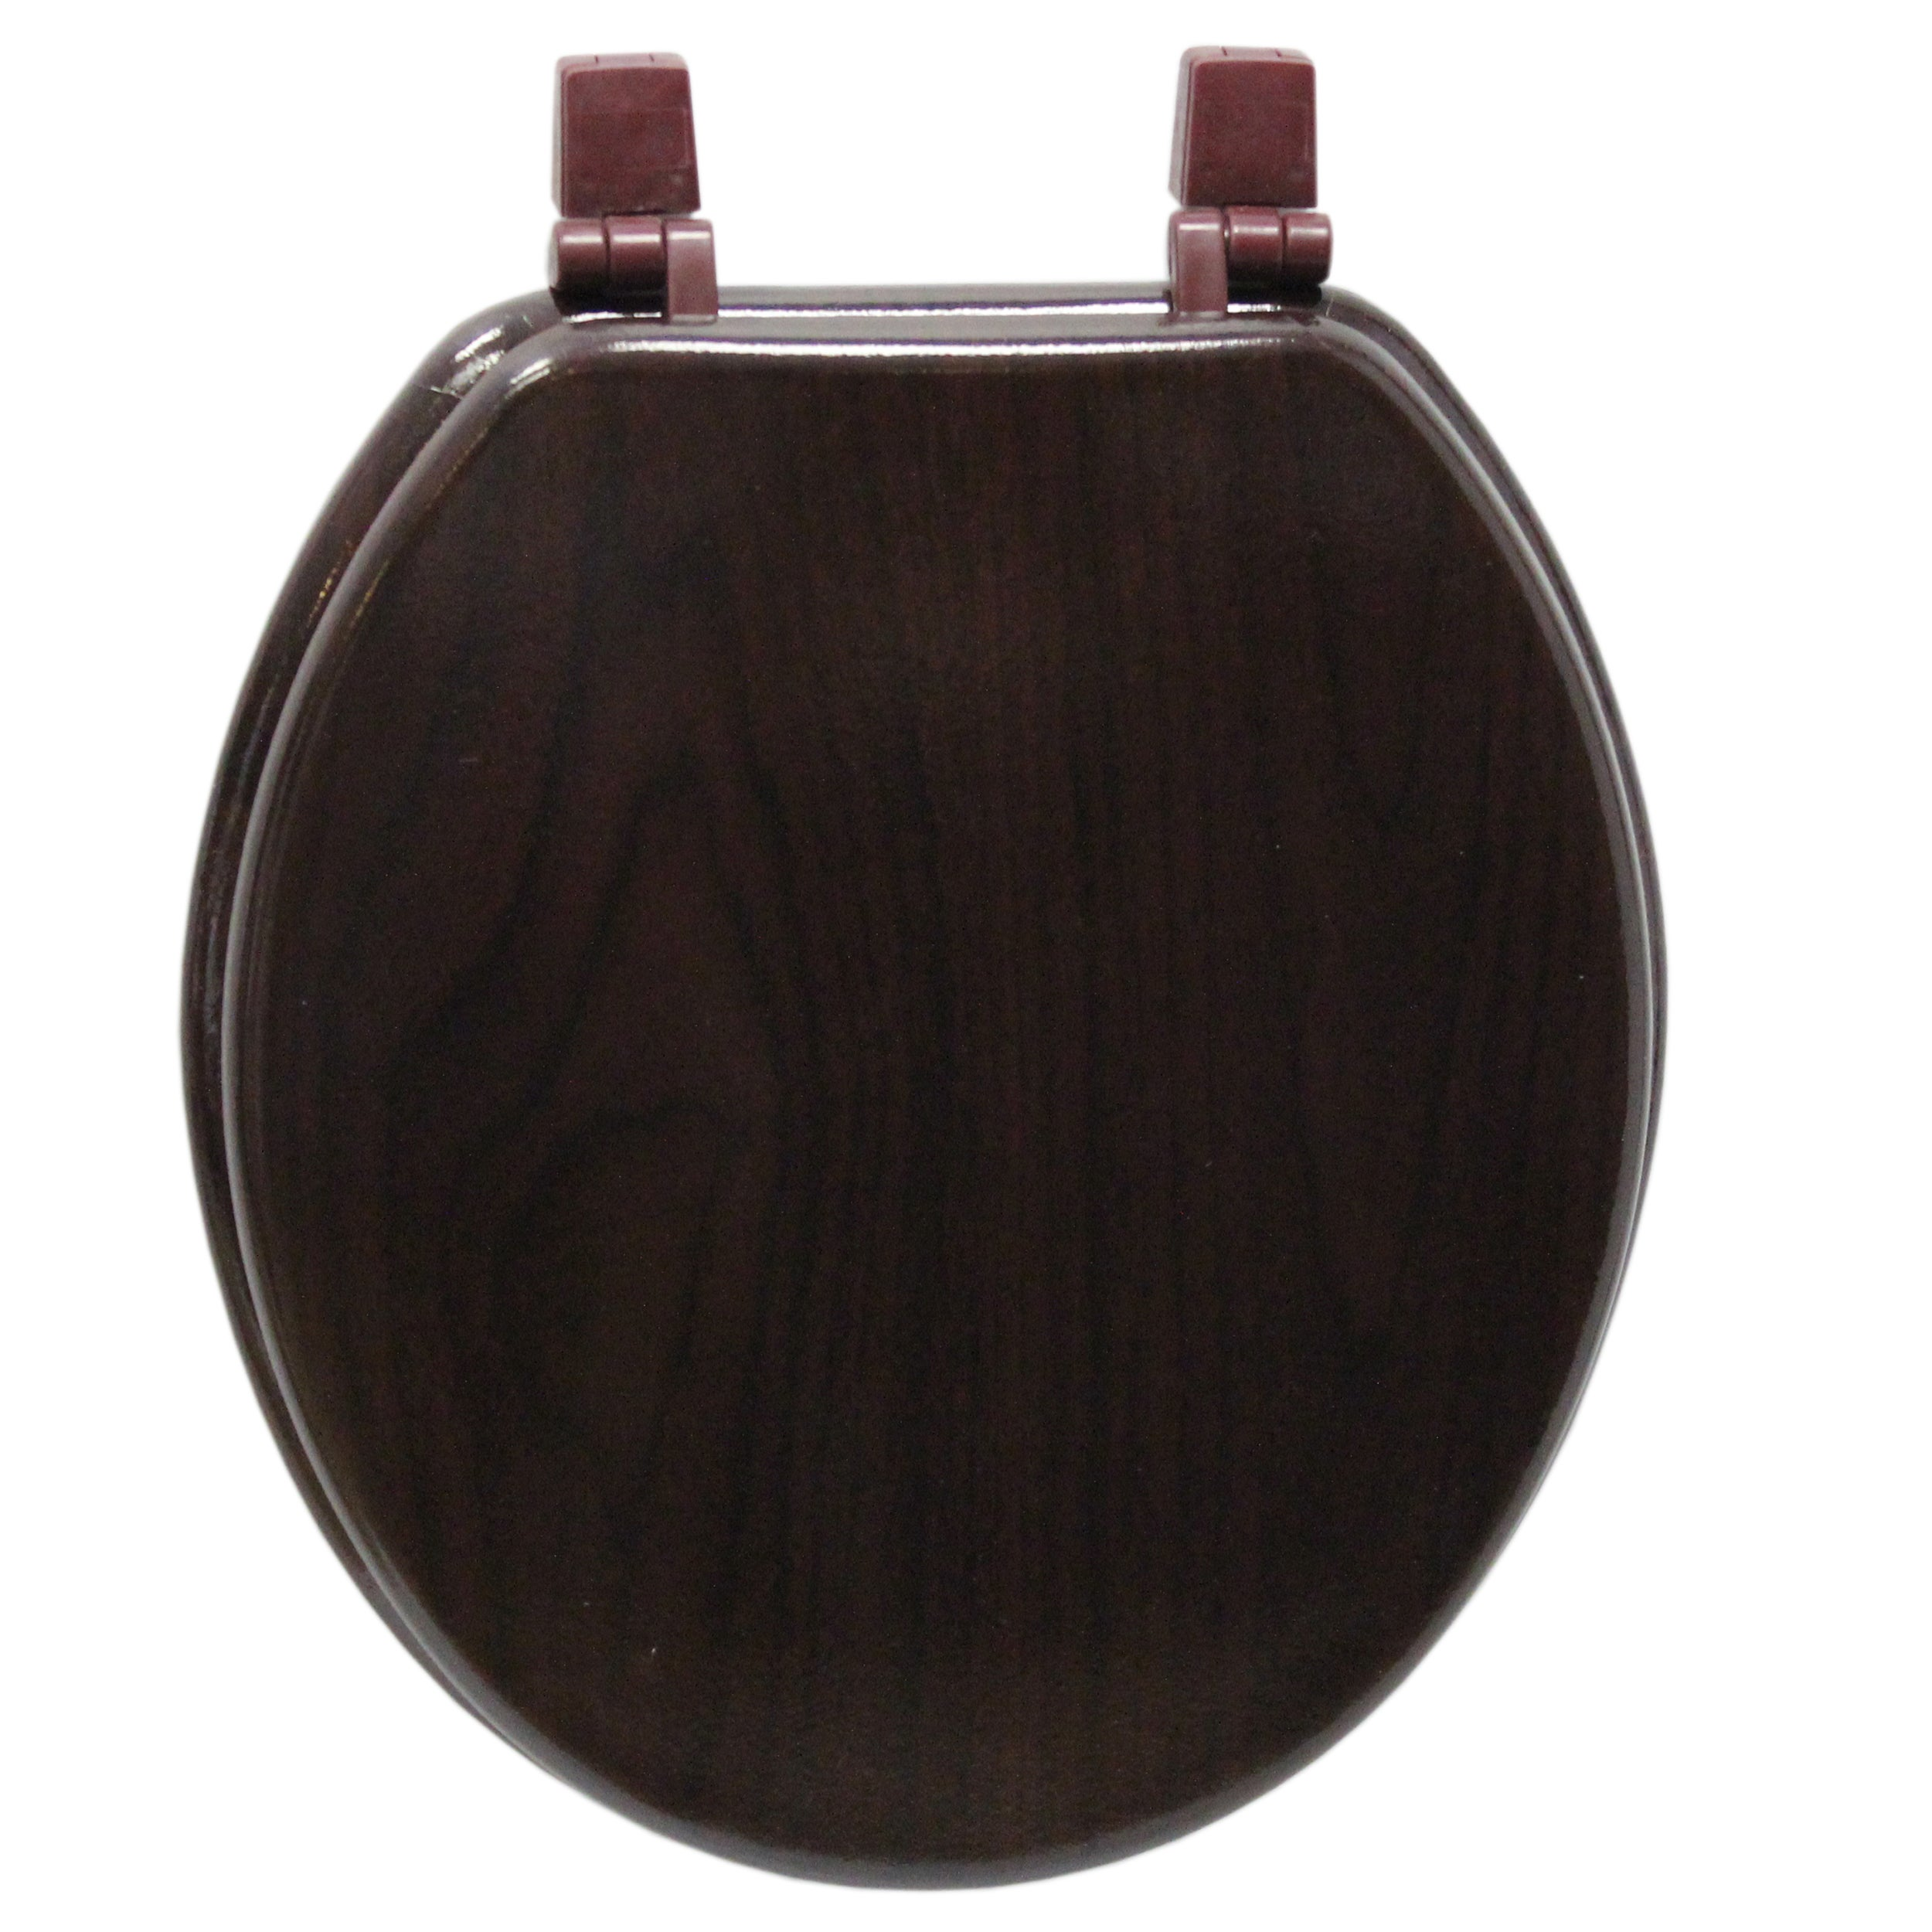 Admirable Brown Toilets Find Great Home Improvement Deals Shopping Gmtry Best Dining Table And Chair Ideas Images Gmtryco